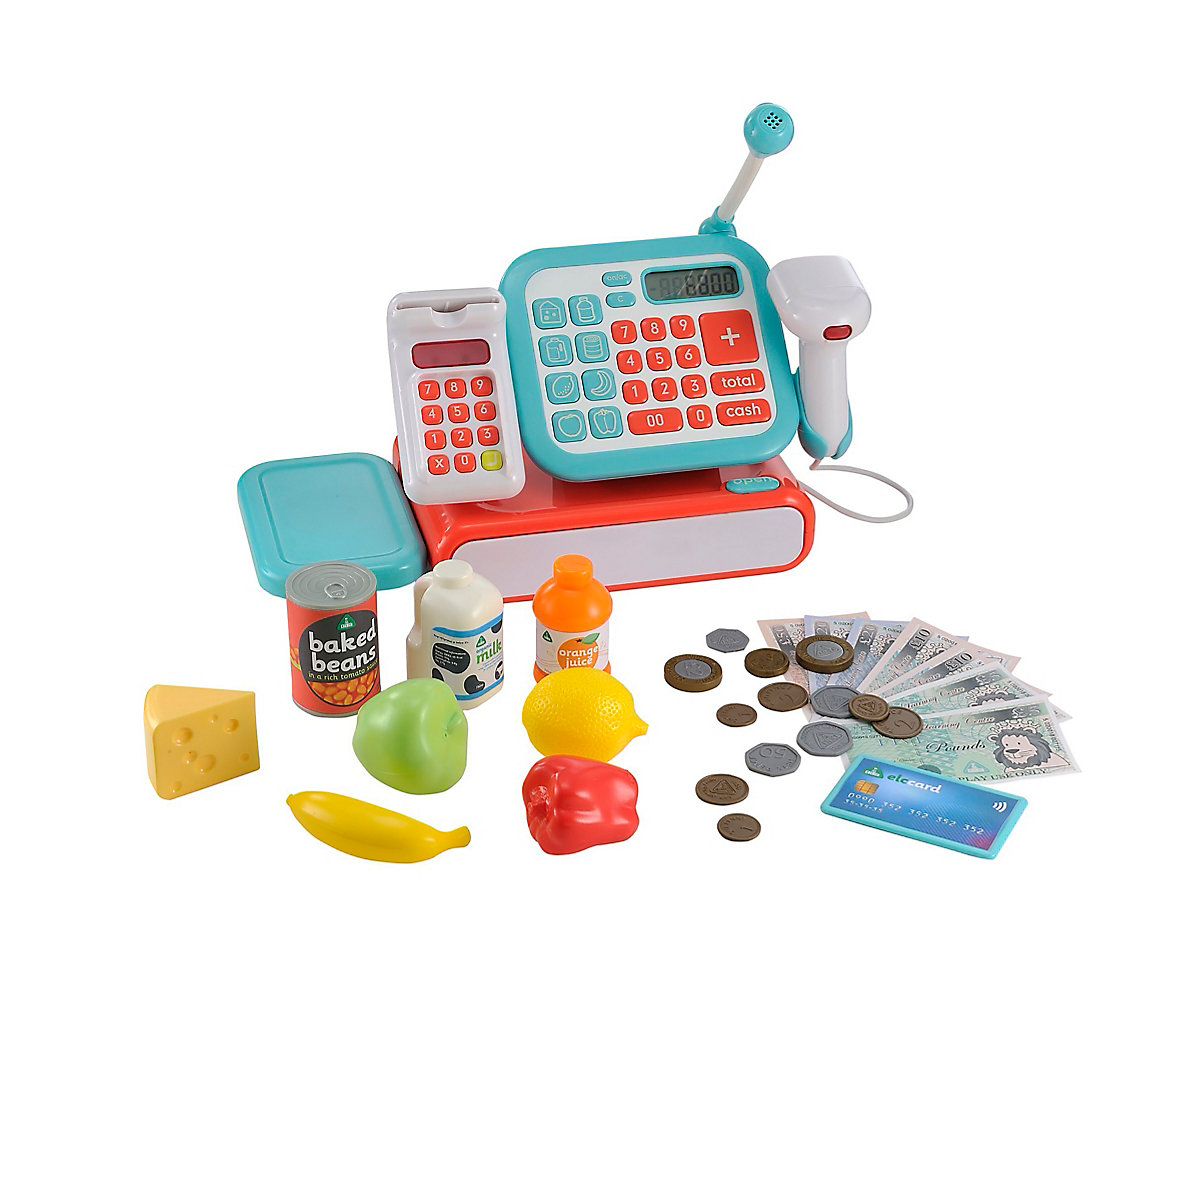 New ELC Boys and Girls Cash Register - Blue Toy From 3 years - Dressing Up Gifts